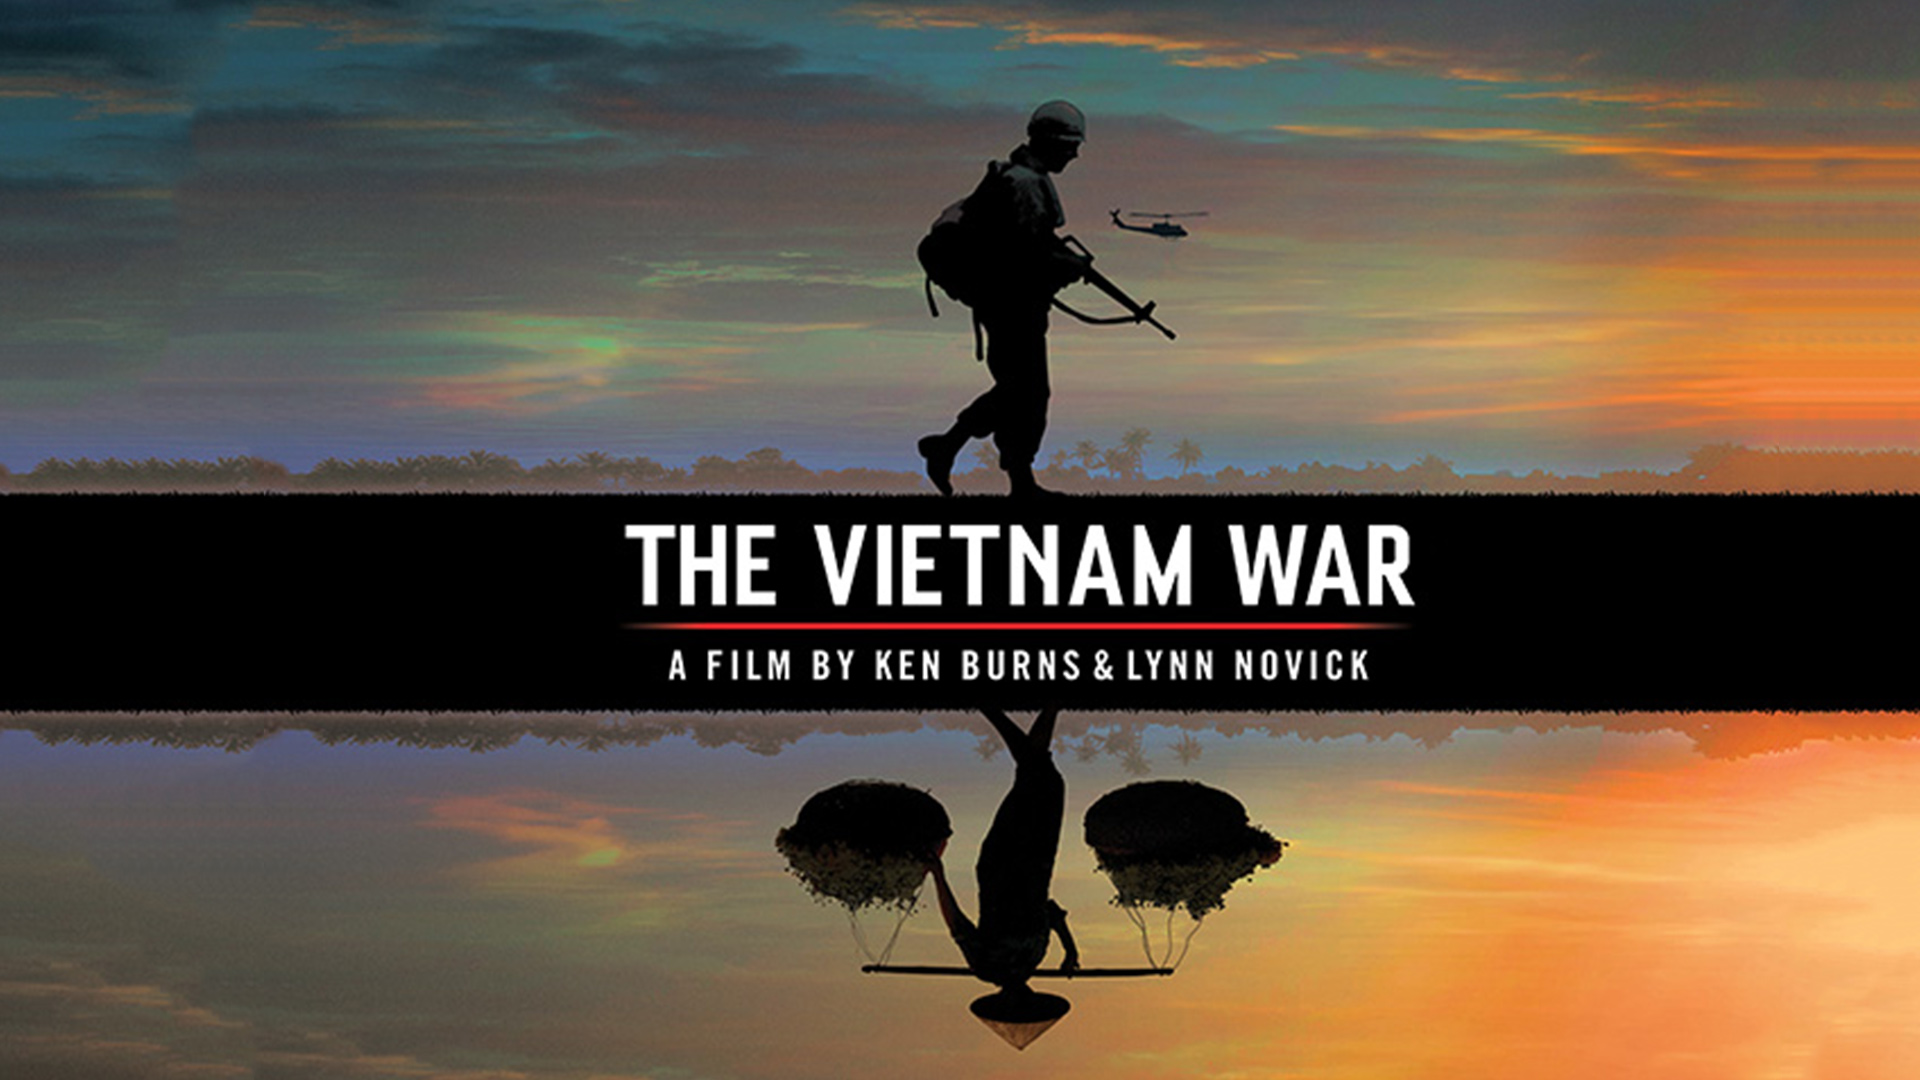 THE VIETNAM WAR: The Veneer of Civilization (June 1968-May 1969)